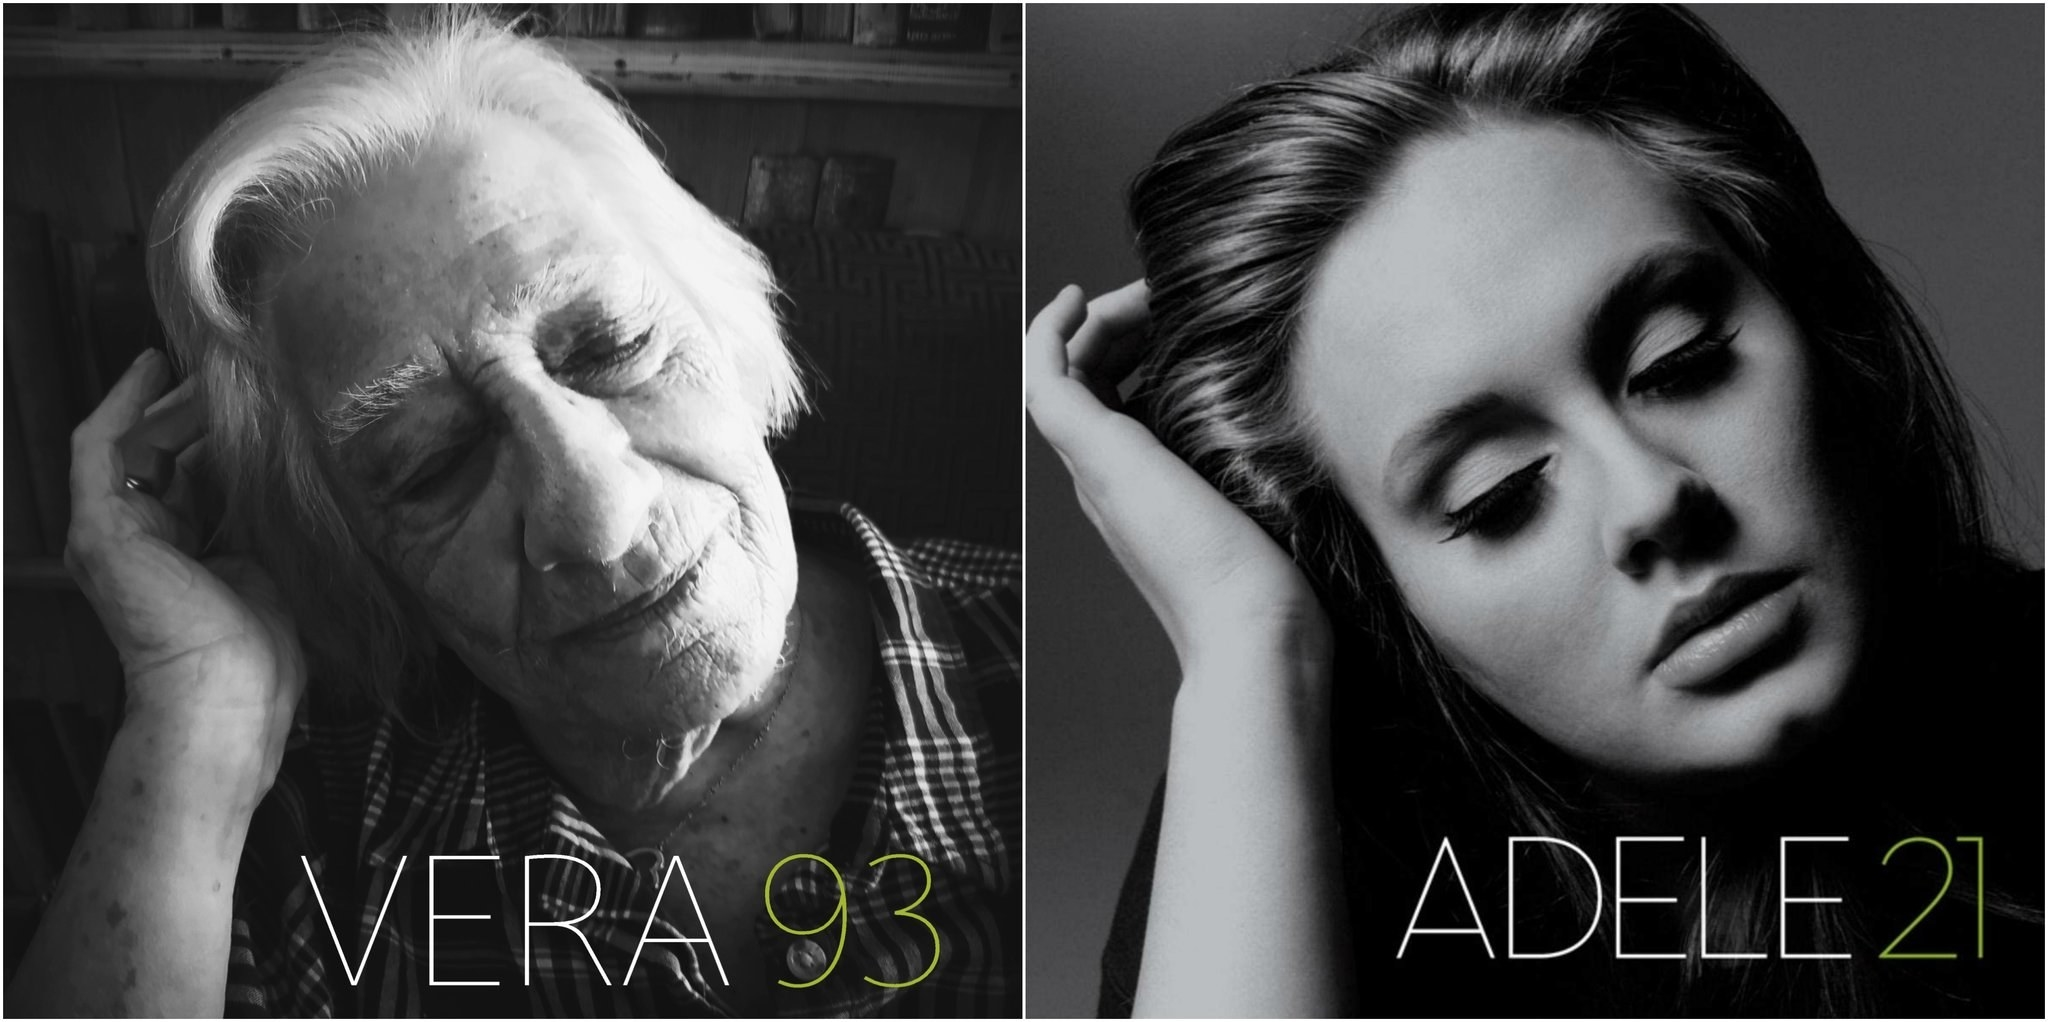 An elderly woman recreating Adele's 21 album cover